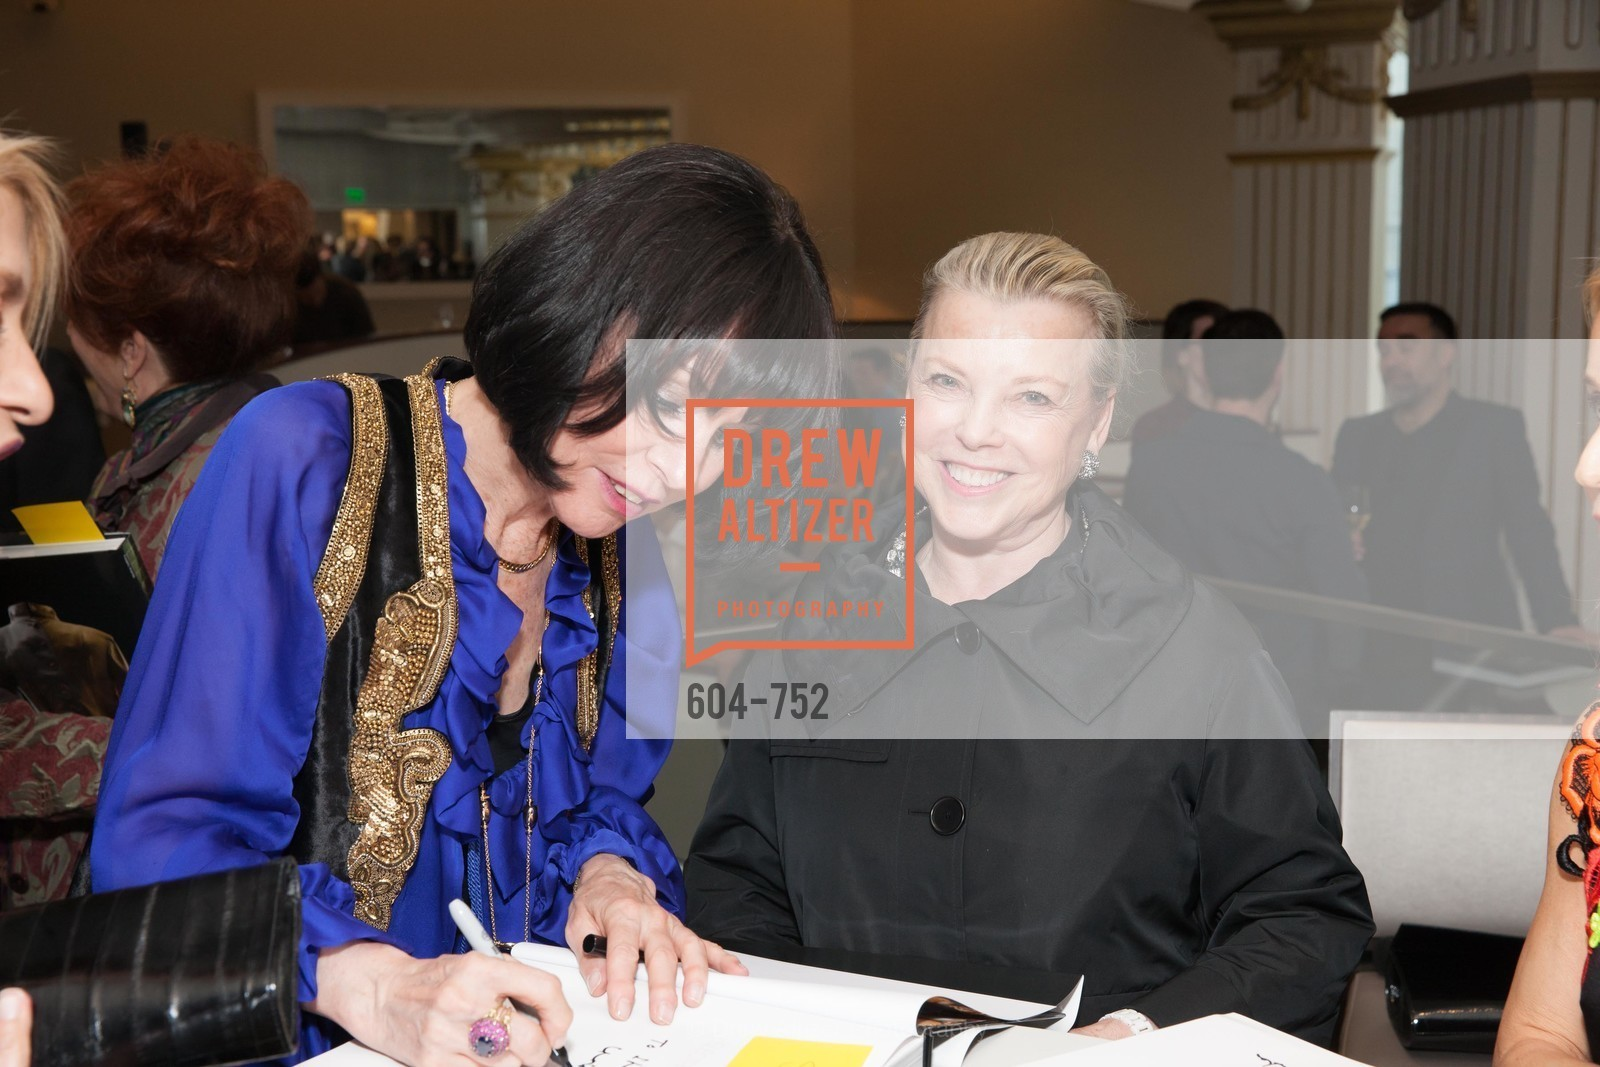 Christine Suppes, Jeanne Lawrence, Electric Fashion Book Signing with Christine Suppes & Ken Downing at THE ROTUNDA, NEIMAN MARCUS, Neiman Marcus, Rotunda, May 27th, 2015,Drew Altizer, Drew Altizer Photography, full-service agency, private events, San Francisco photographer, photographer california